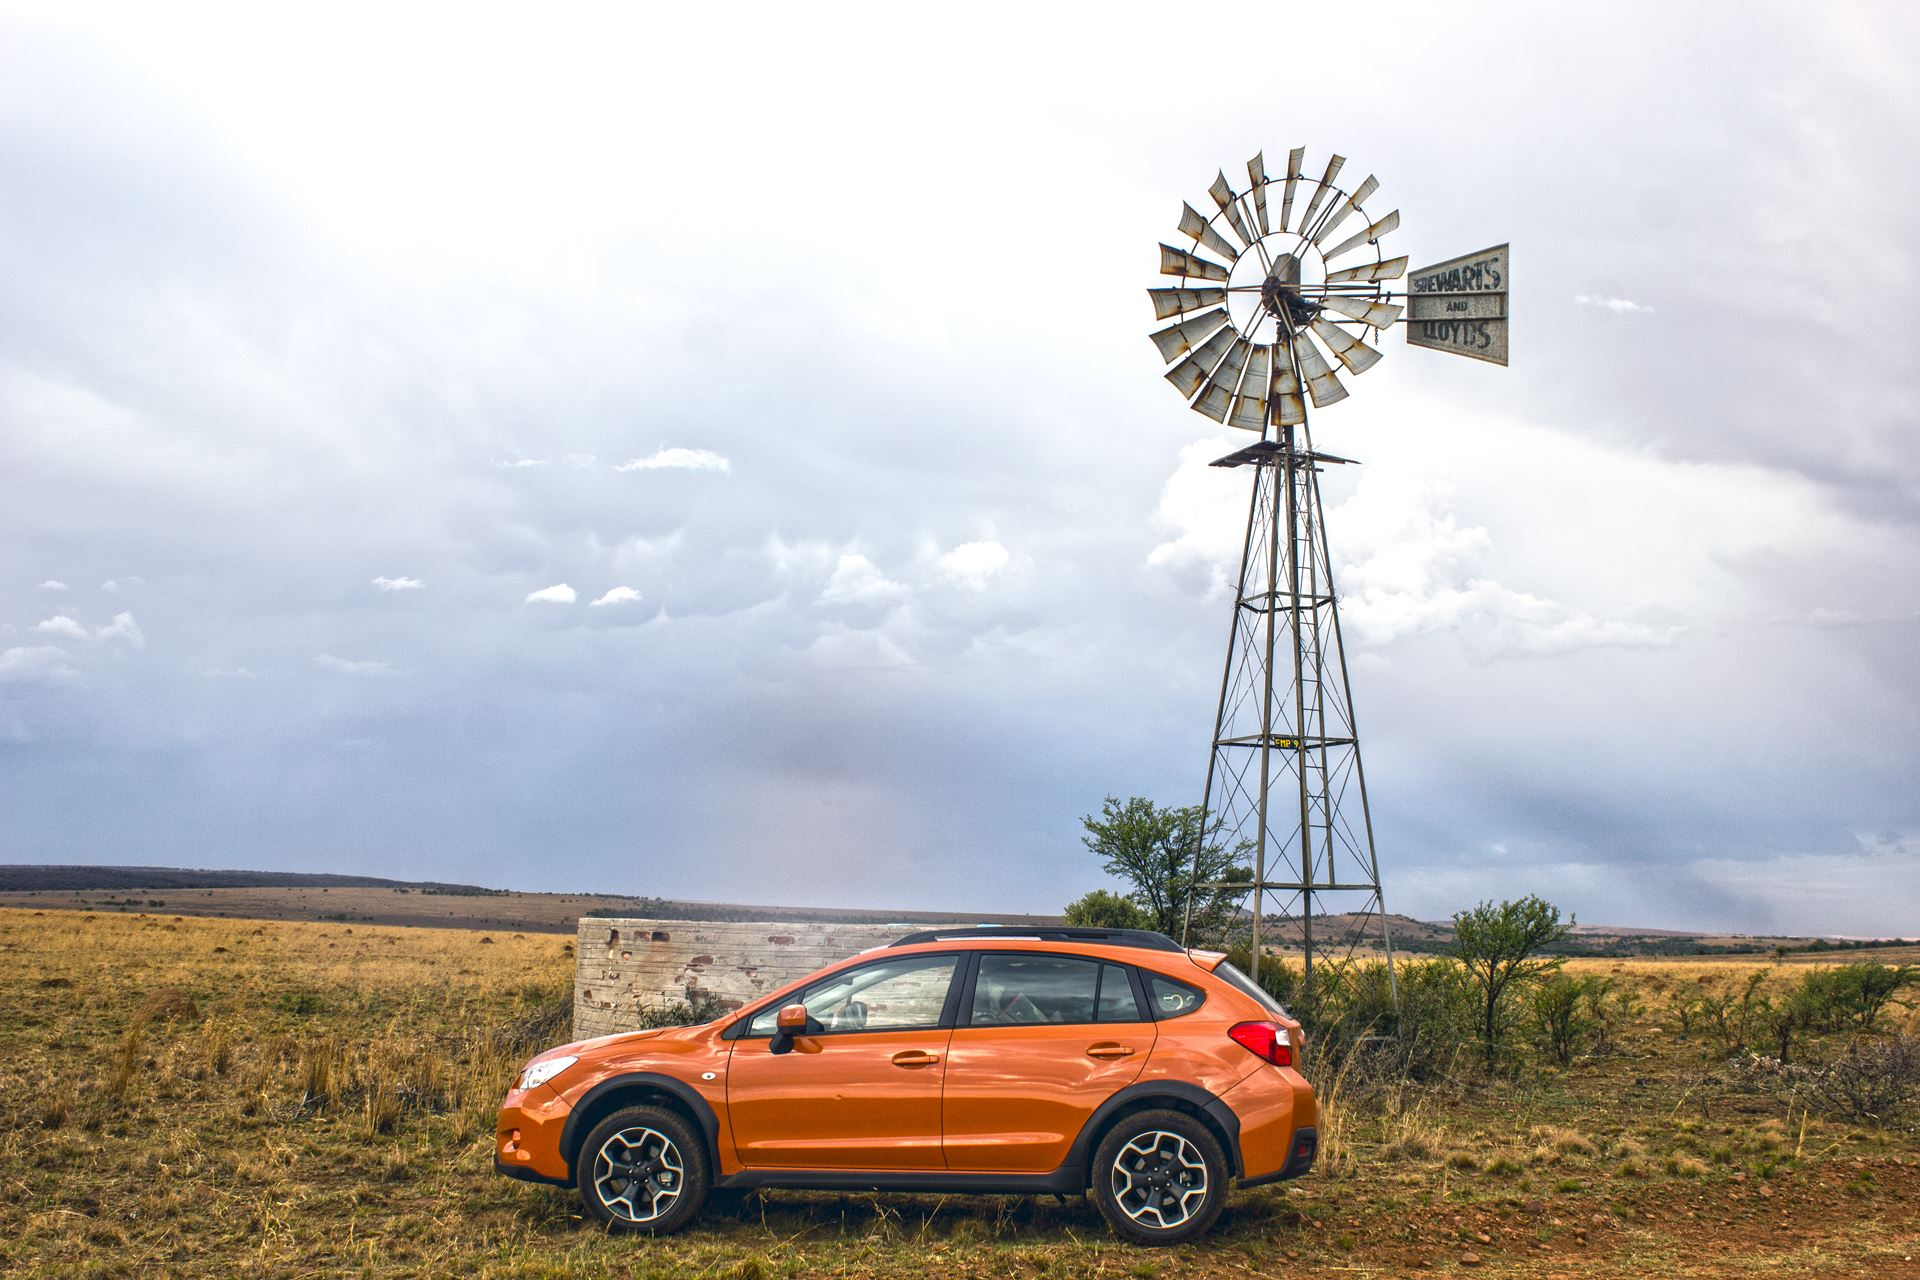 Game Drive Image of the Subaru XV Test Drive in South Africa